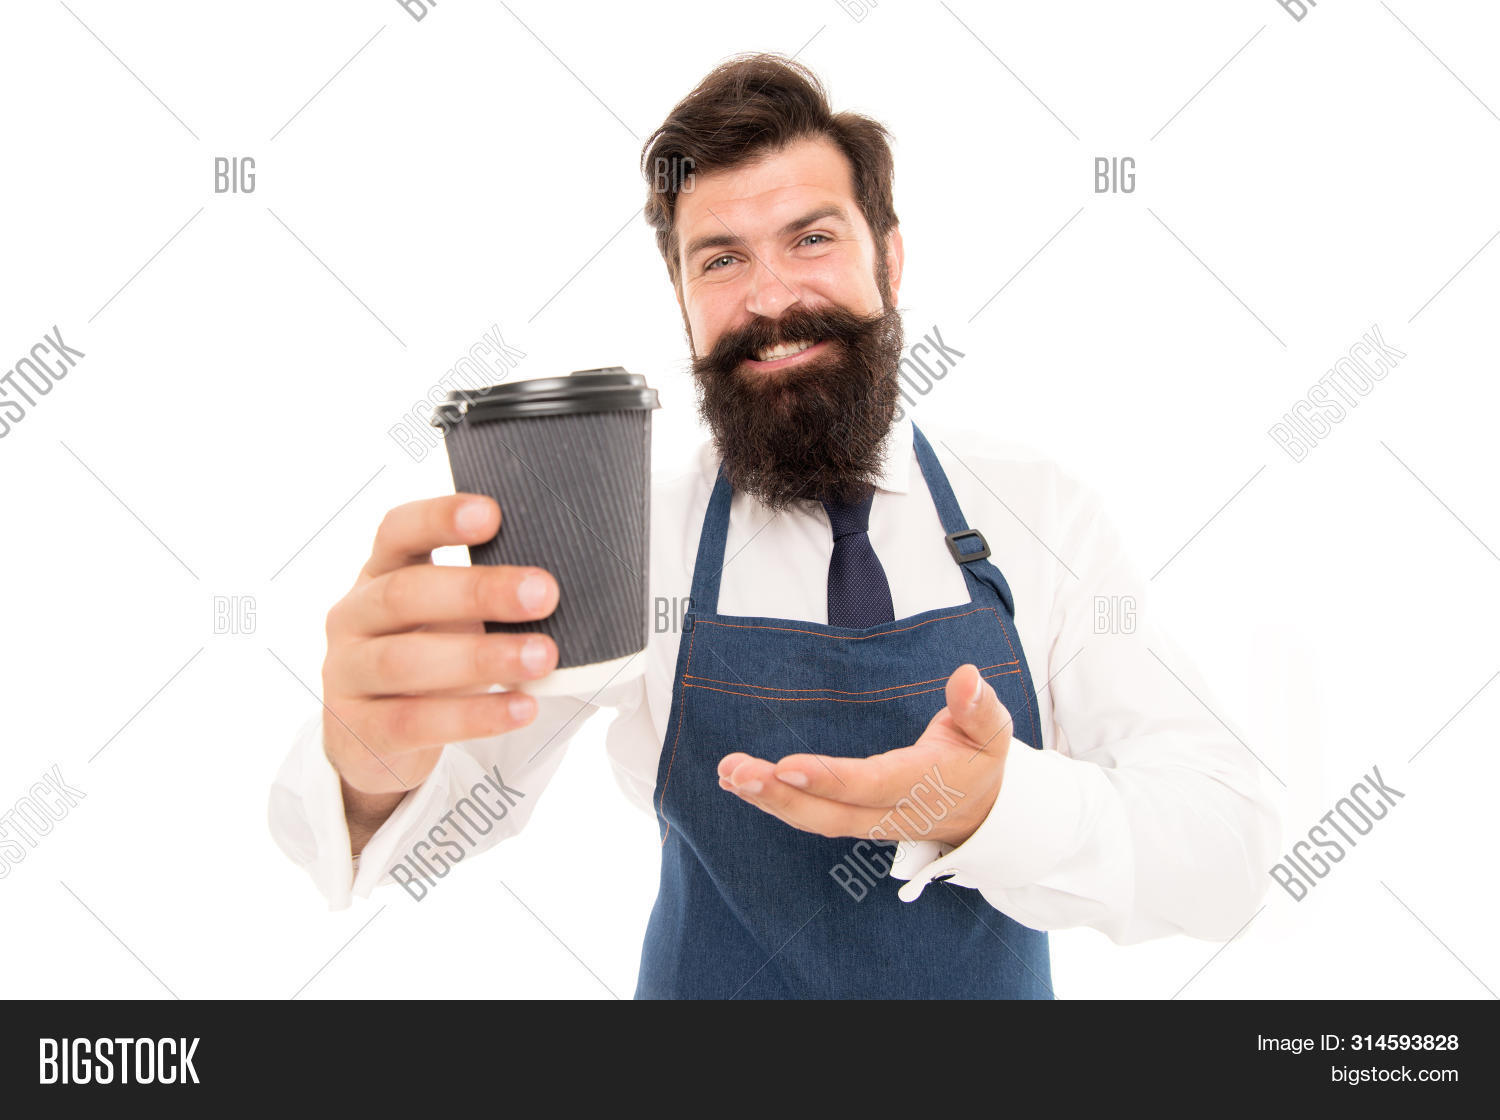 apron,arabica,away,barista,bearded,beverage,blend,breakfast,brew,business,cafe,caffeine,coffee,comfort,cup,delicious,drink,eco,emotions,enjoying,fresh,go,hipster,hold,hot,inspired,isolated,lunch,man,mature,modern,morning,mug,paper,prepared,relax,robusta,smile,take,tea,to,warm,white,you